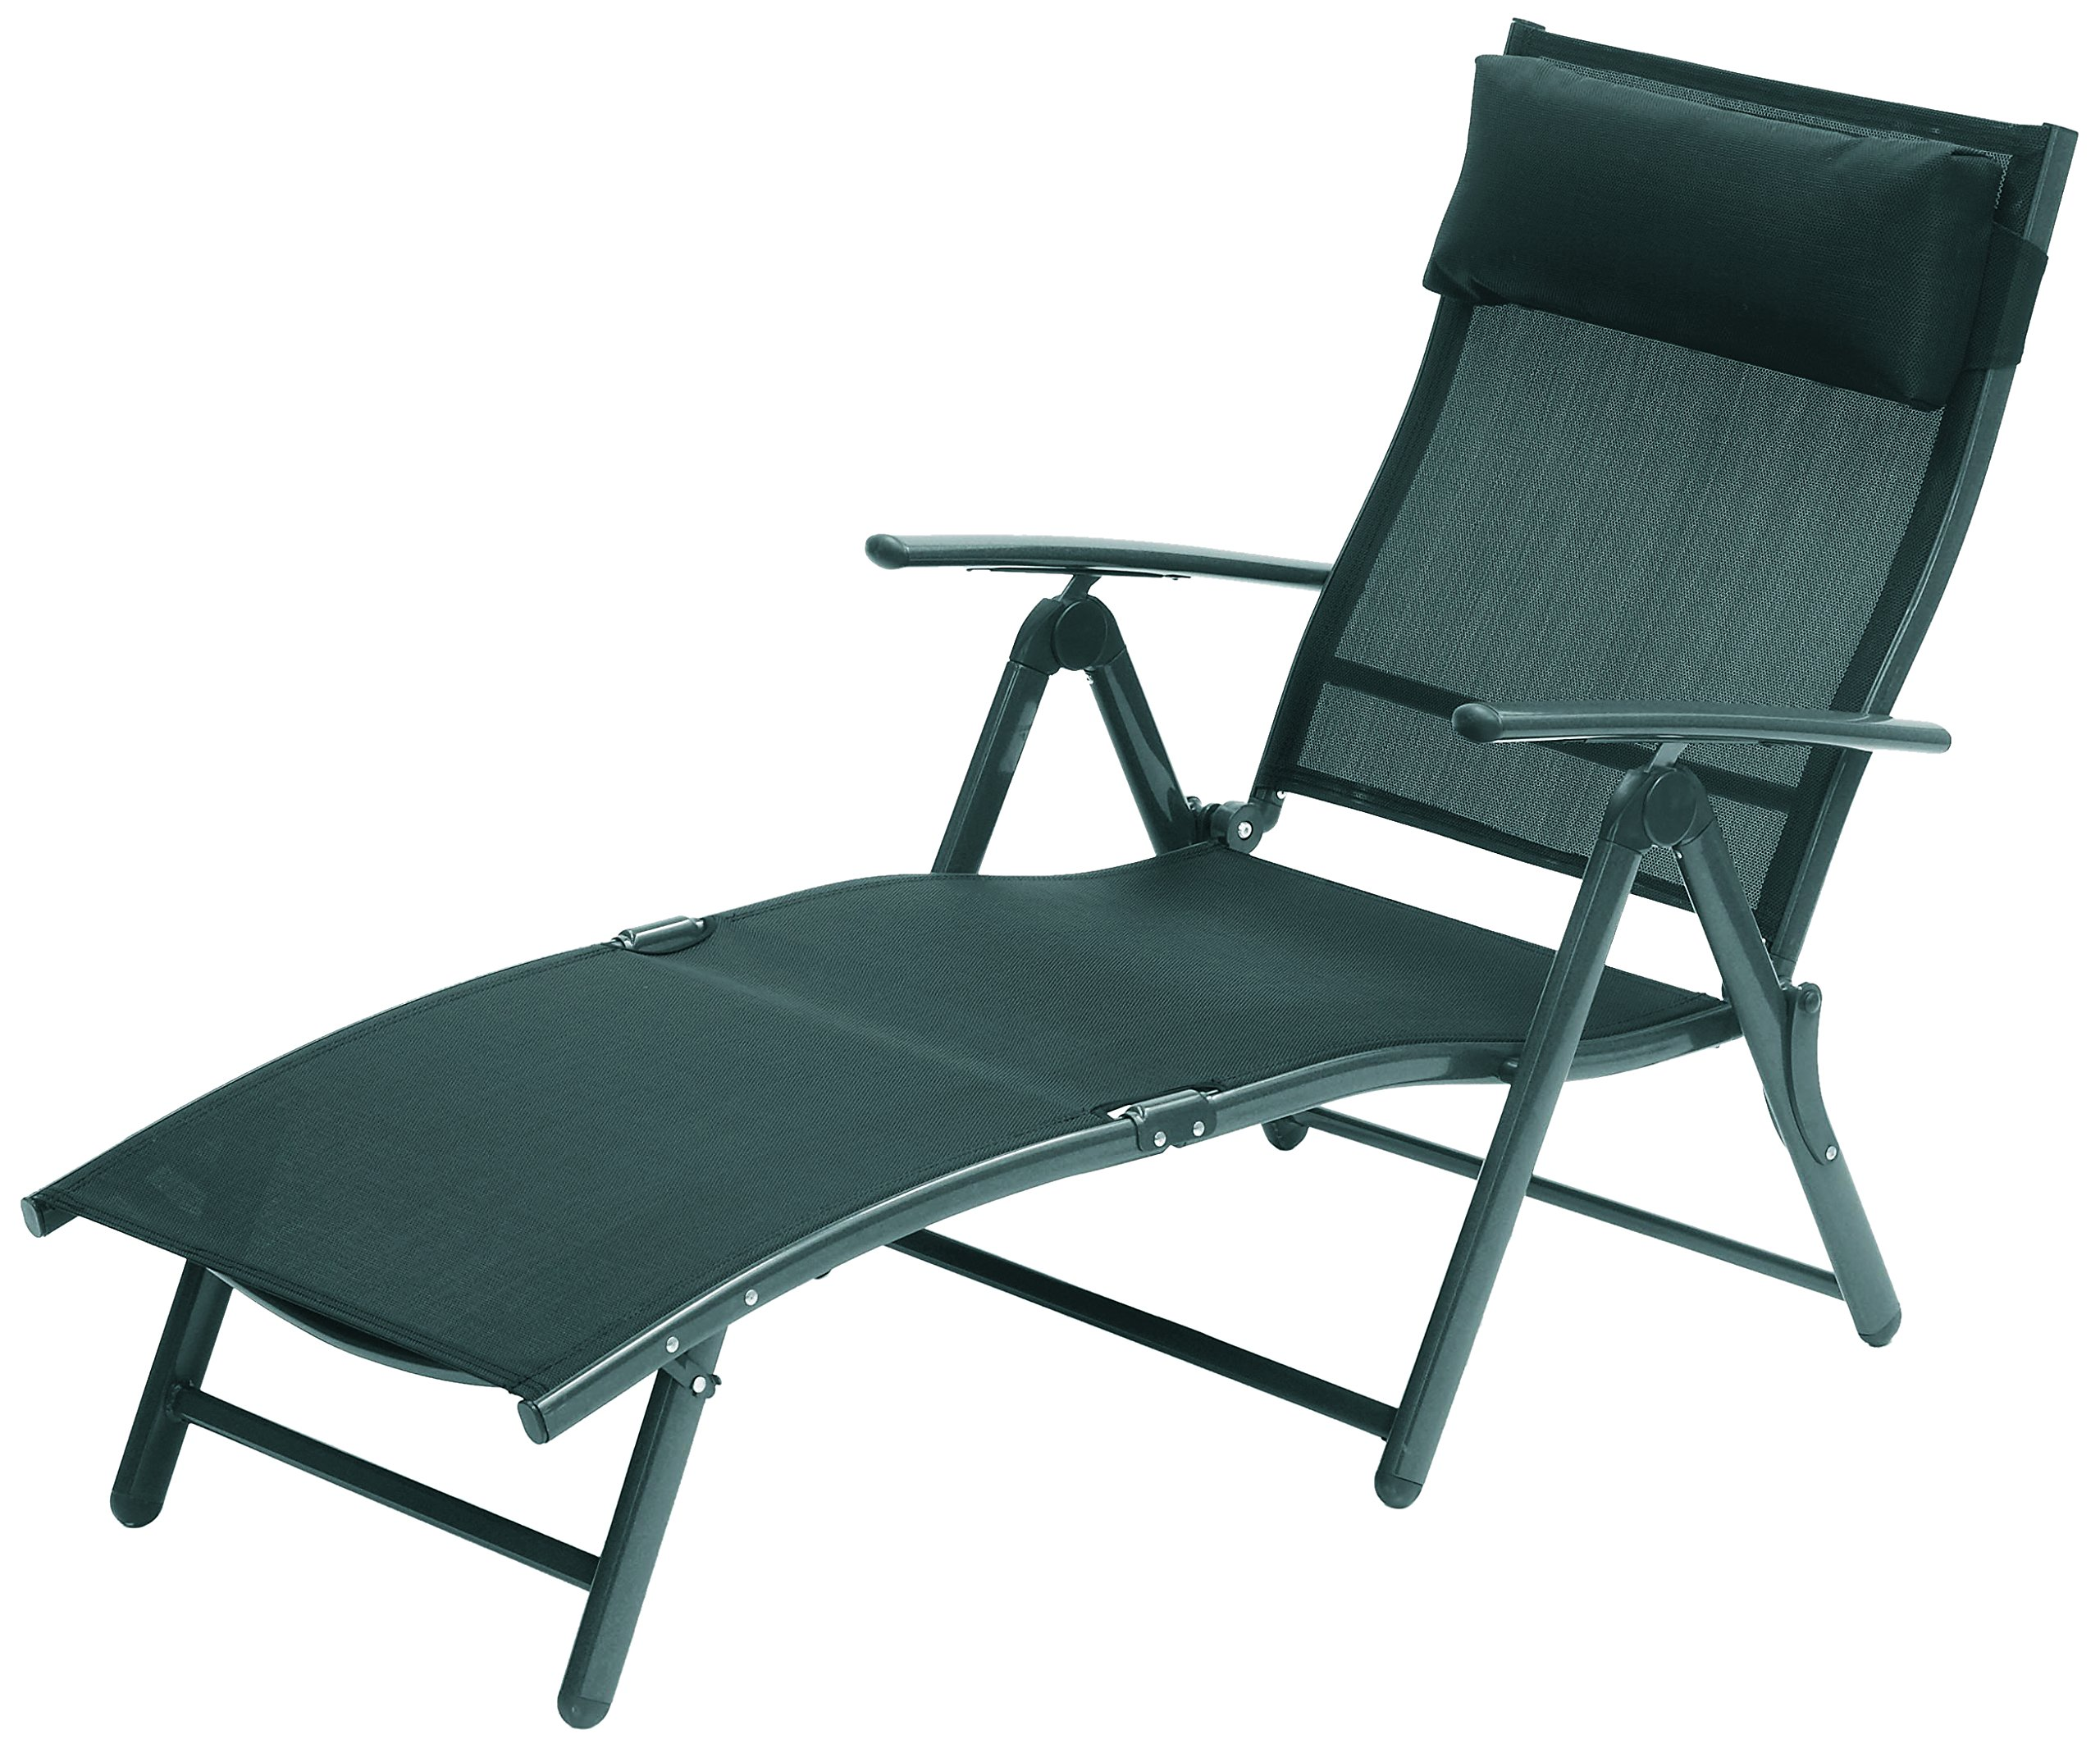 SunTime Havana Sunlounger, Black - Durable construction with weather resistant Text Ilene Five reclining positions Comfortable headrest cushion included - patio-furniture, patio-chairs, patio - 91DQKW19oRL -